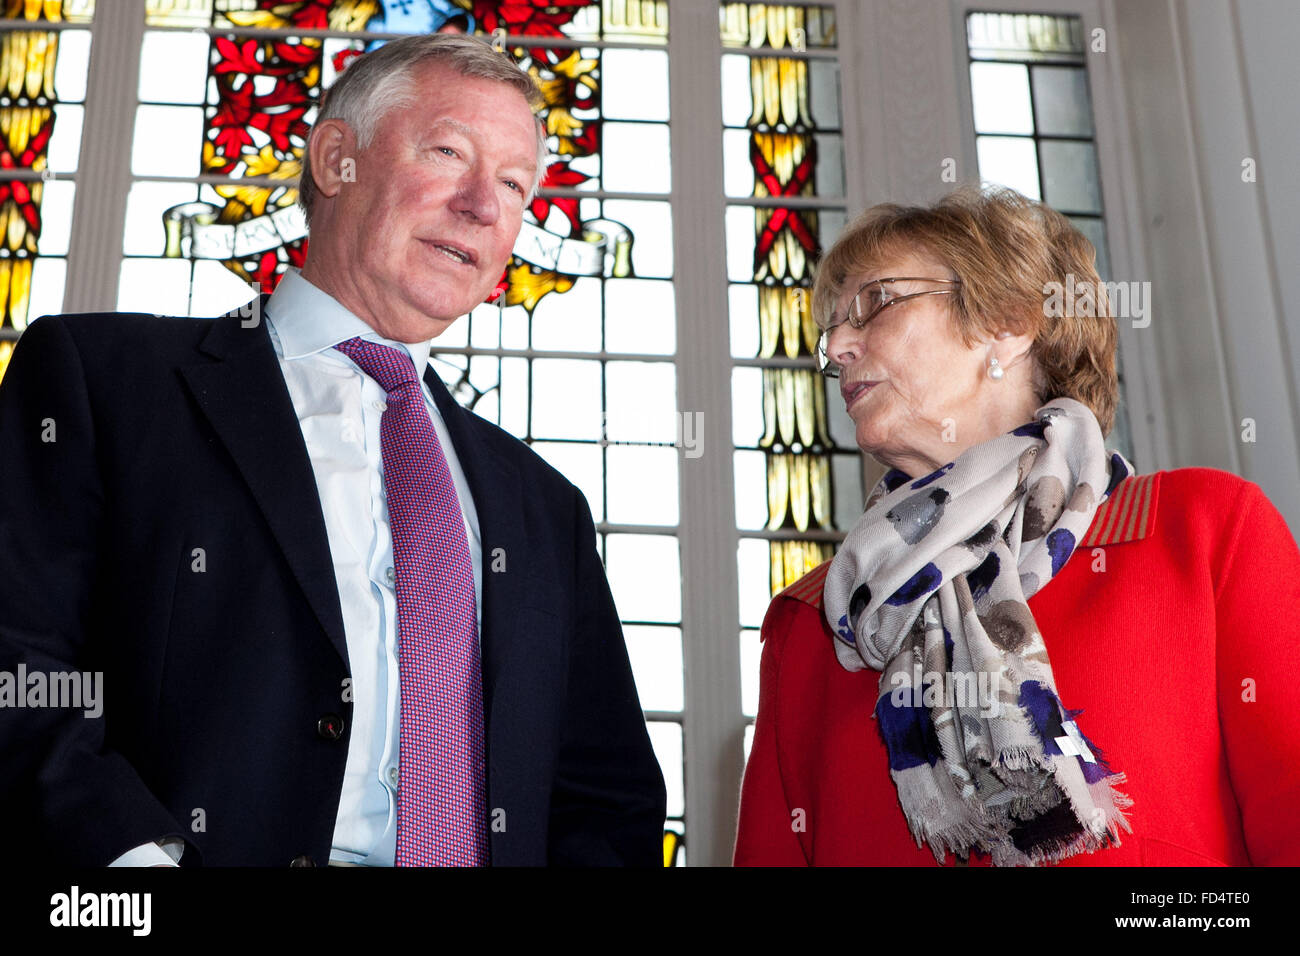 Sir Alex Ferguson , former manager of Manchester United Football Club , receives the Freedom of the Borough of Trafford. - Stock Image